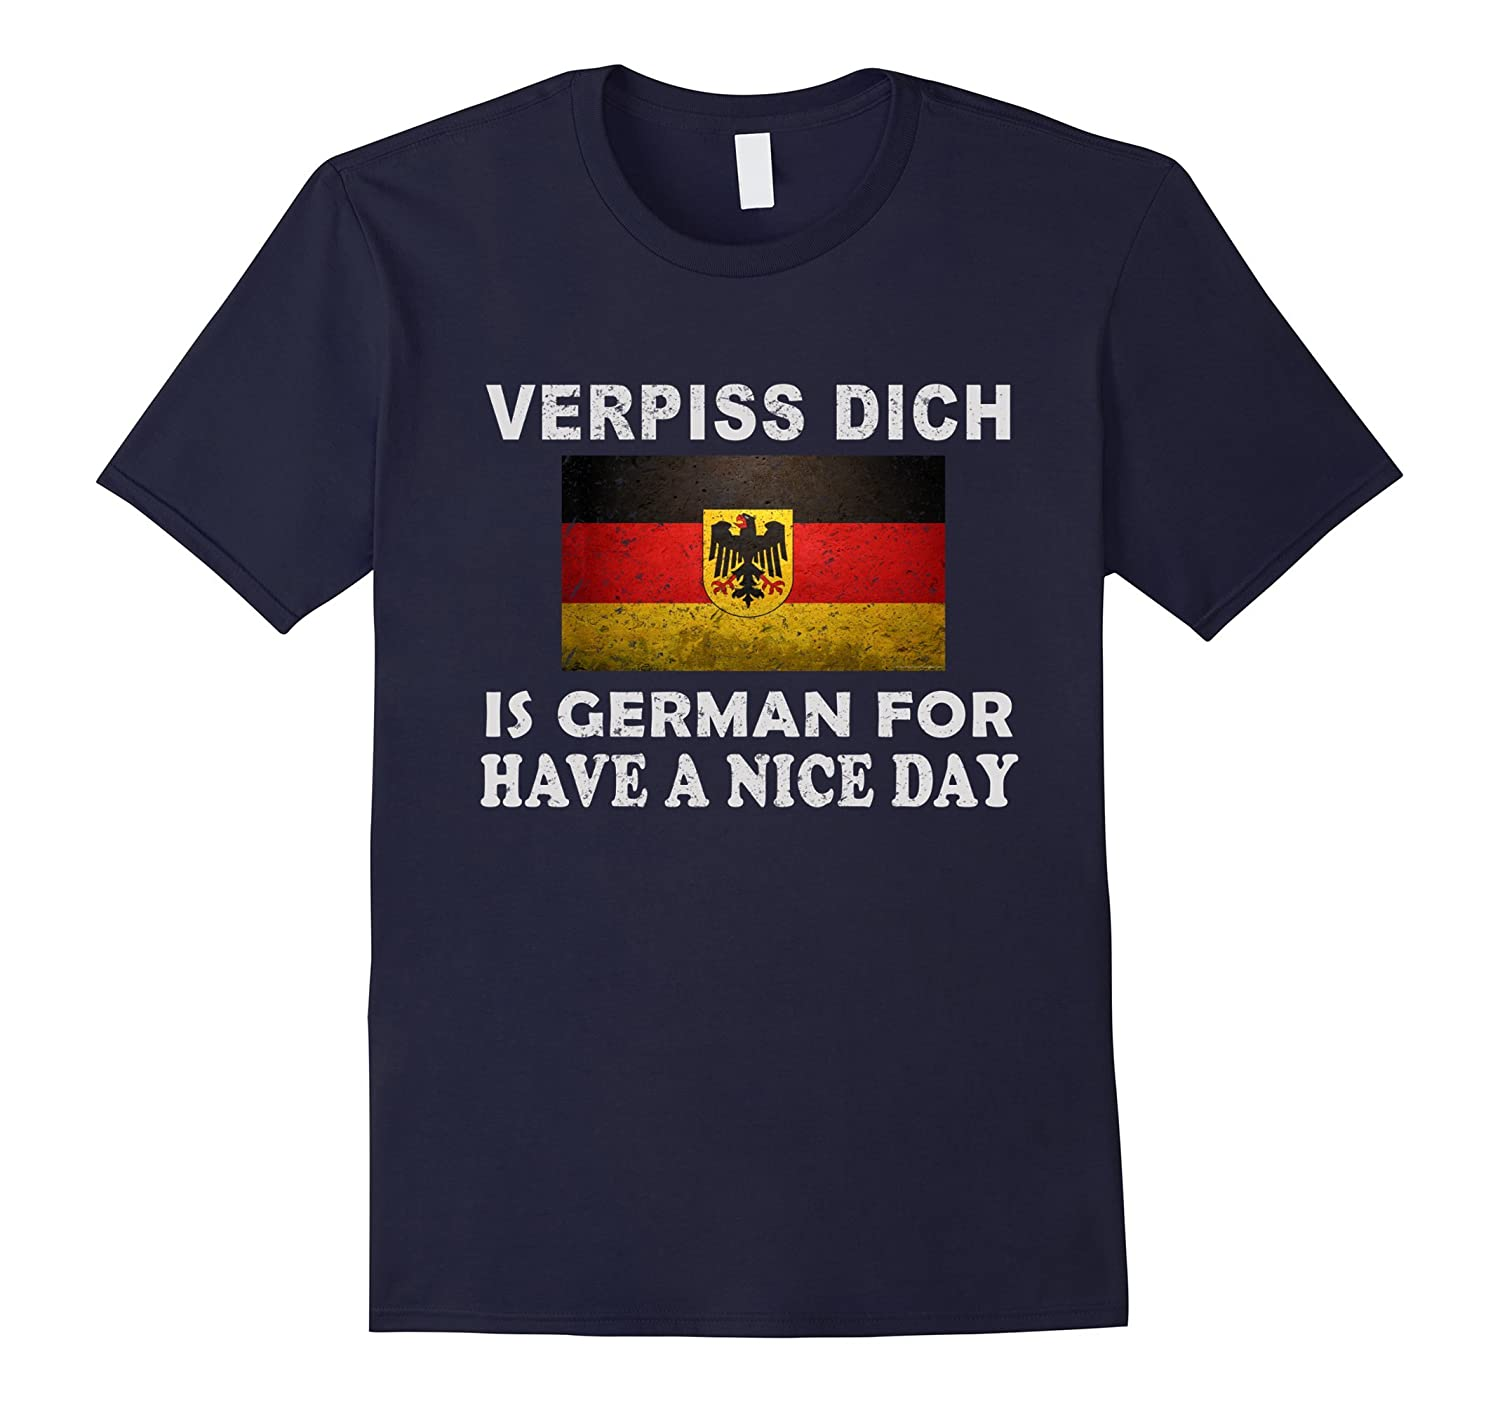 Verpiss dich is German for have a nice day-RT